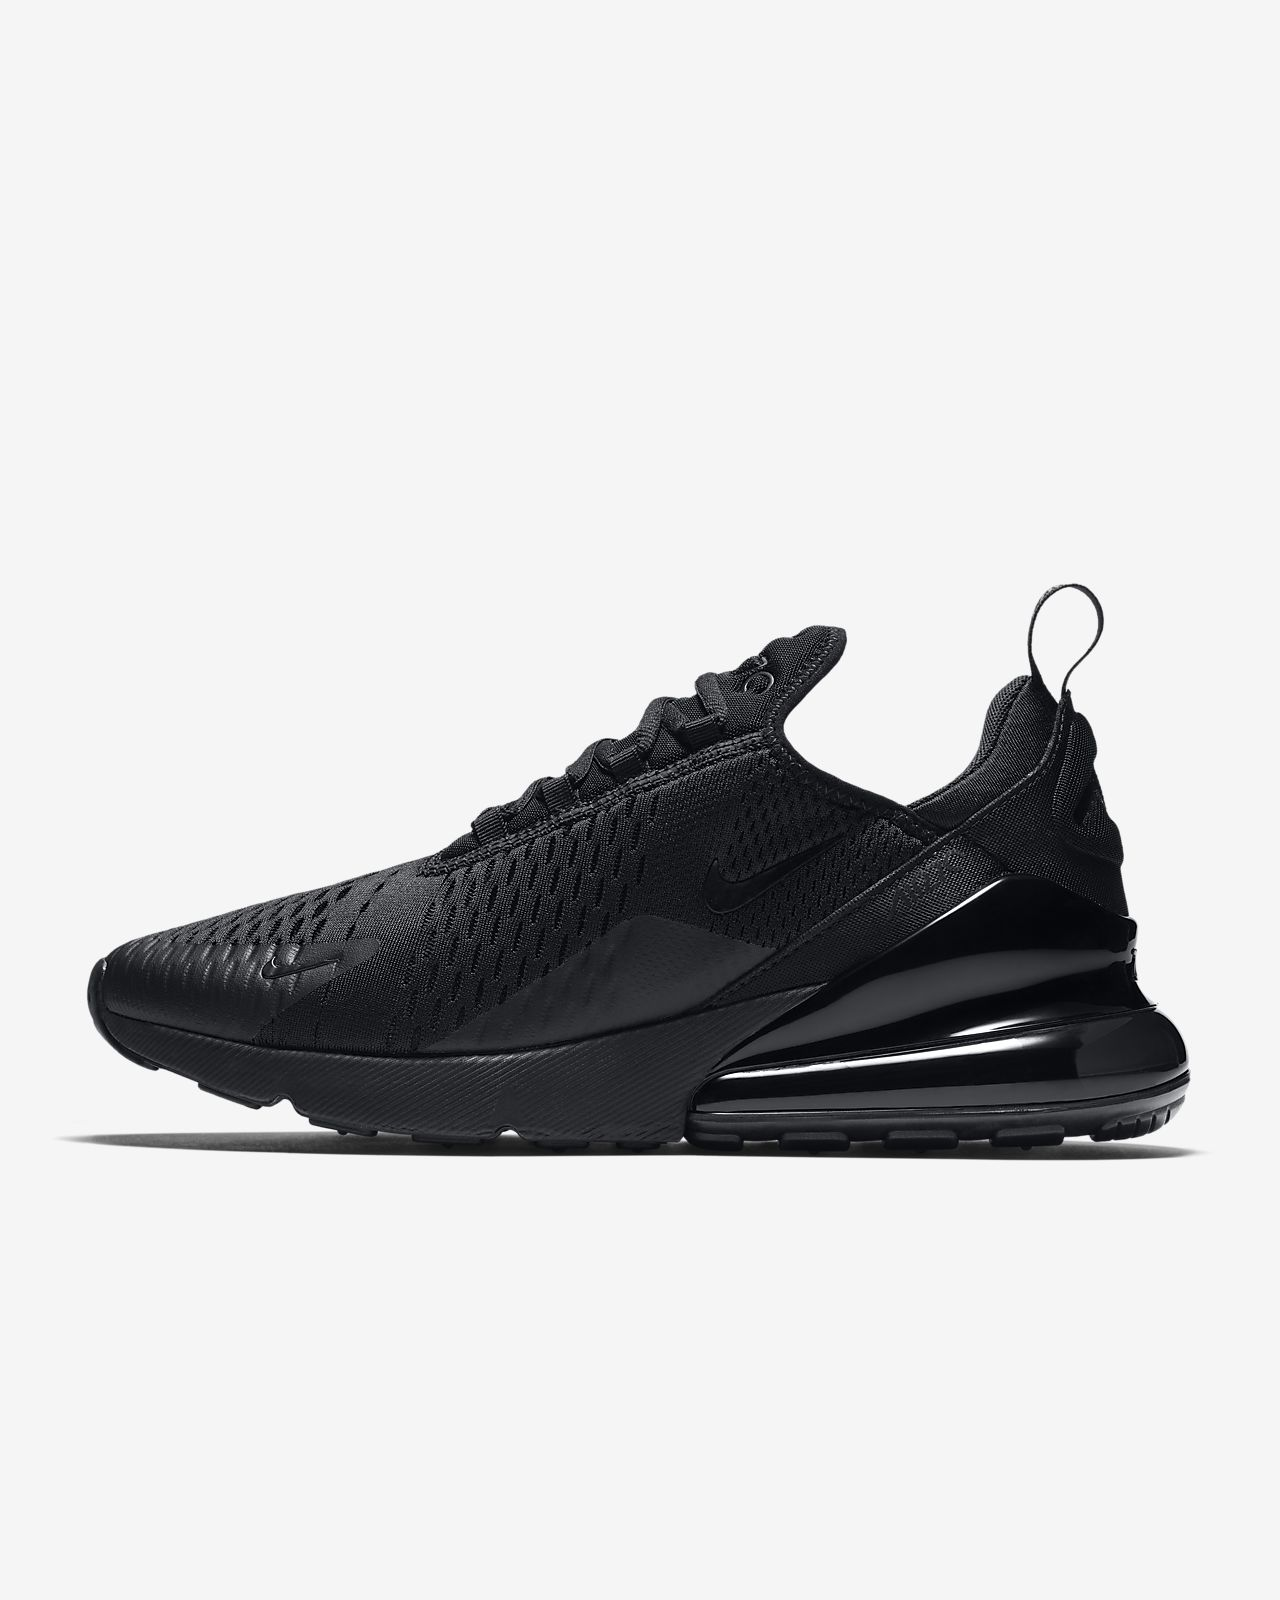 6db4d8b0122 Nike Air Max 270 Men s Shoe. Nike.com CA